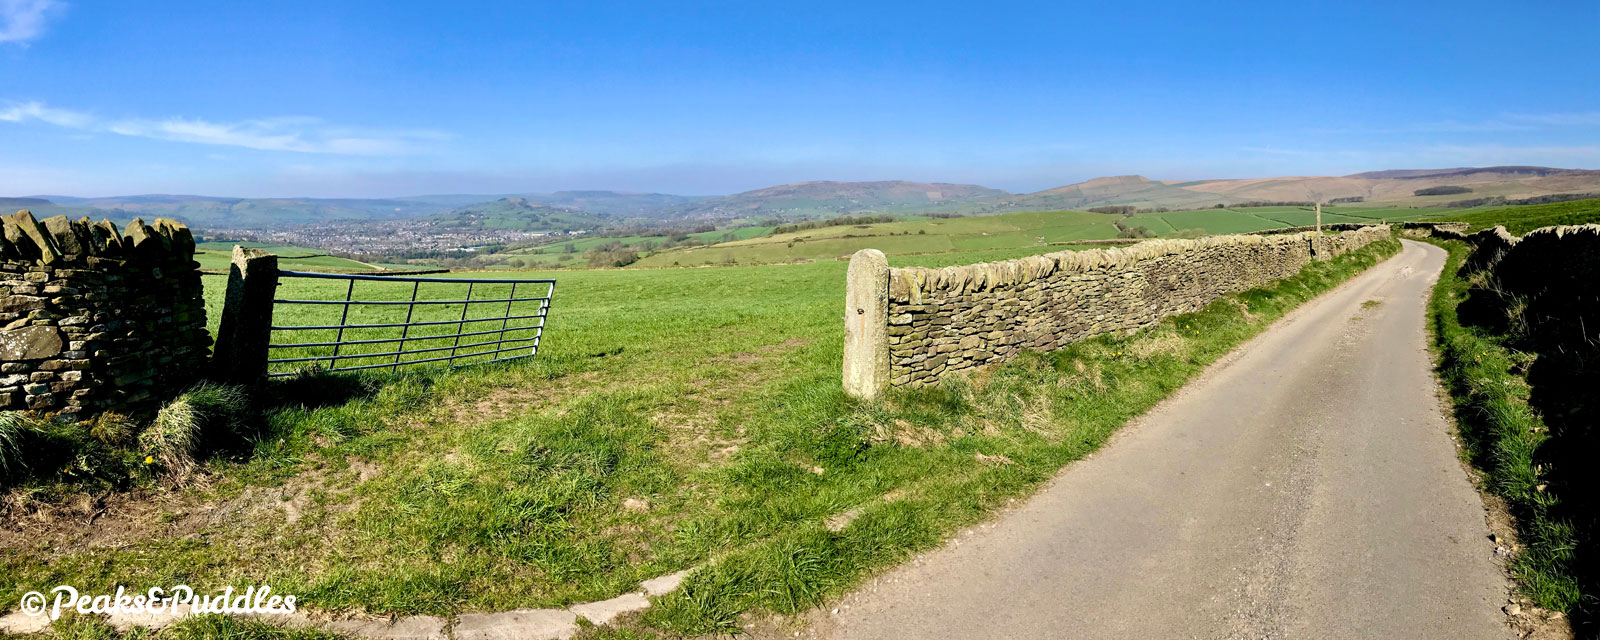 A panorama of the spectacular view looking back from the top of the Slackhall-Sparrowpit climbs, with far-reaching views of Chinley Churn, South Head and Rushup Edge.